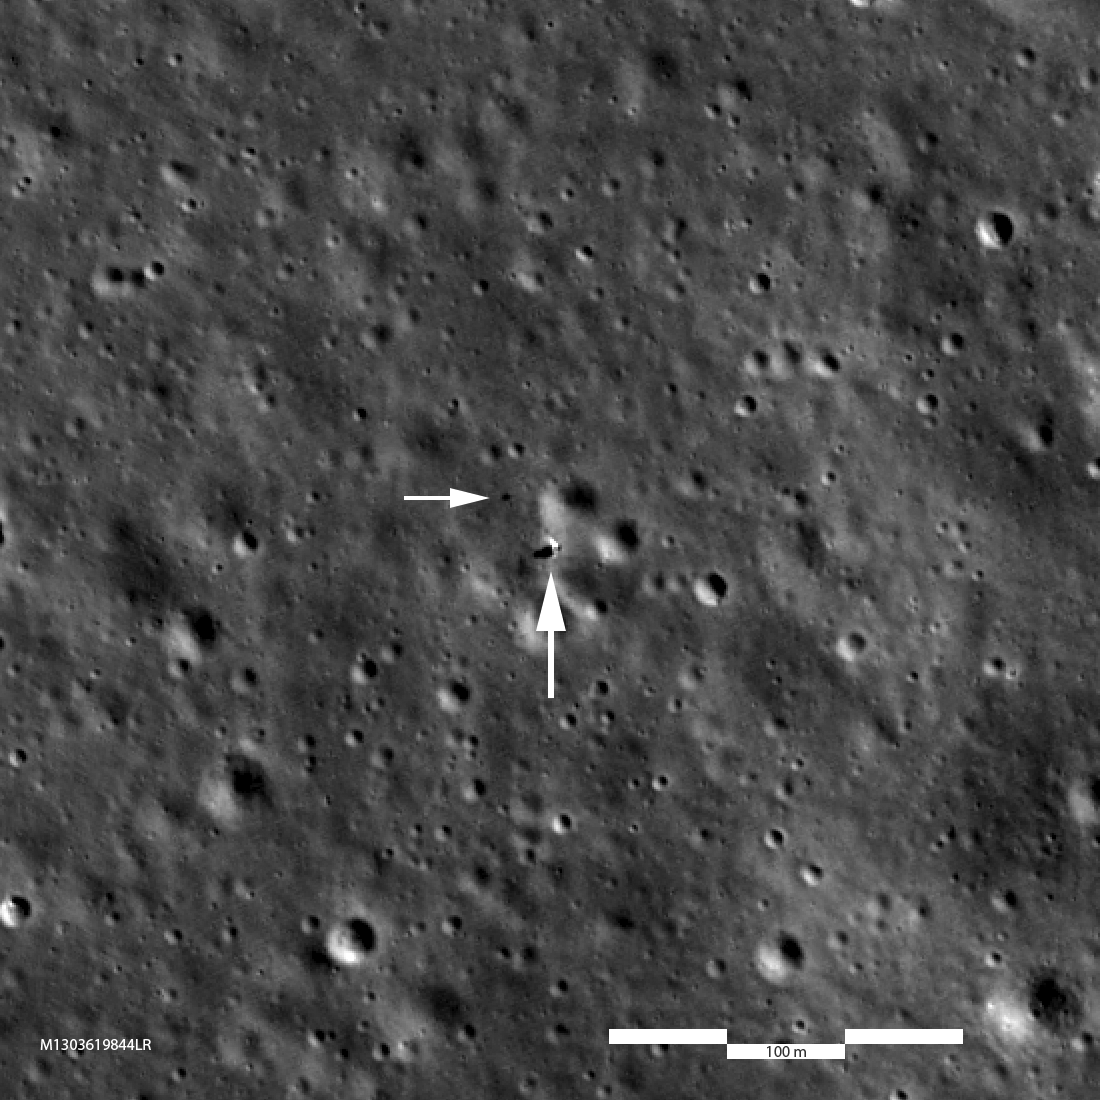 The Chinese rover and lander Chang'e-4 and Yutu-2, seen by NASA's Lunar Reconniassance Orbiter on Feb. 1, 2019. Credit: NASA/GSFC/Arizona State University